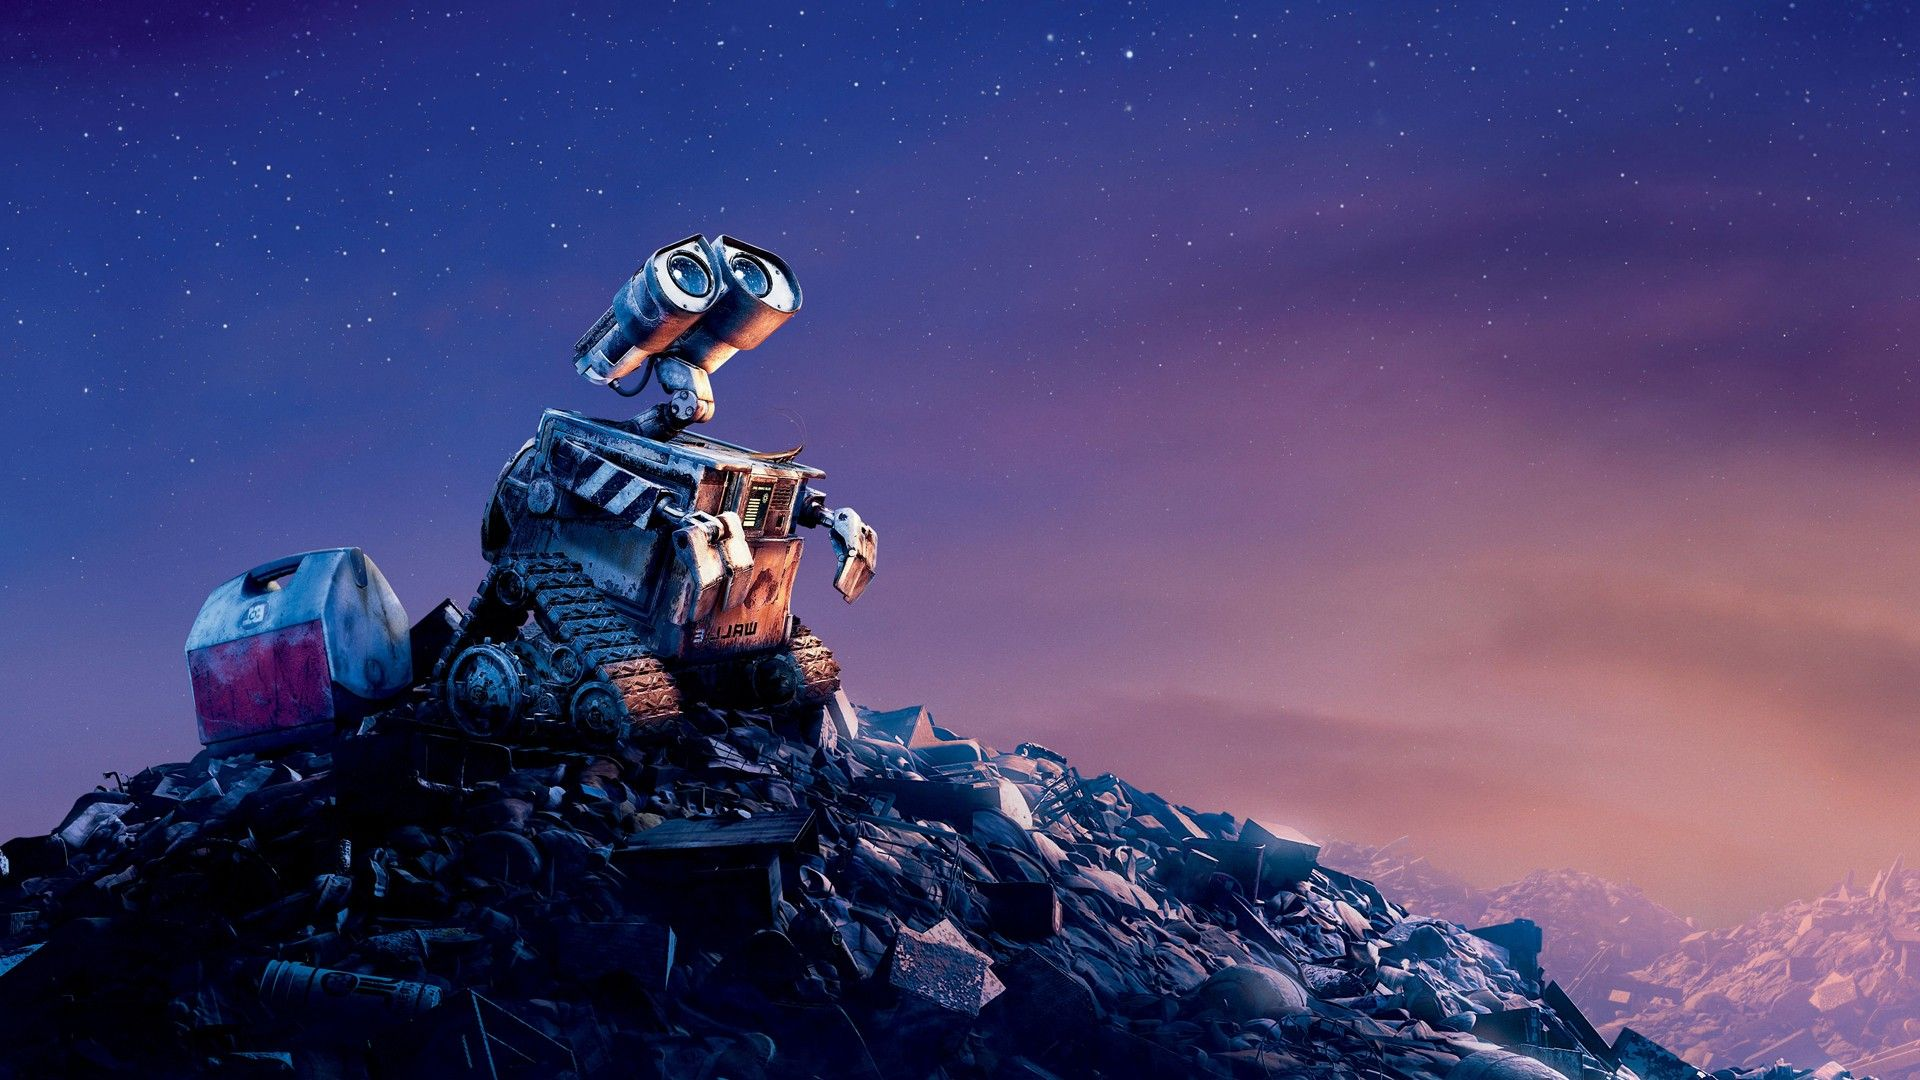 Choose wall e Wallpaper That Accents Your Room